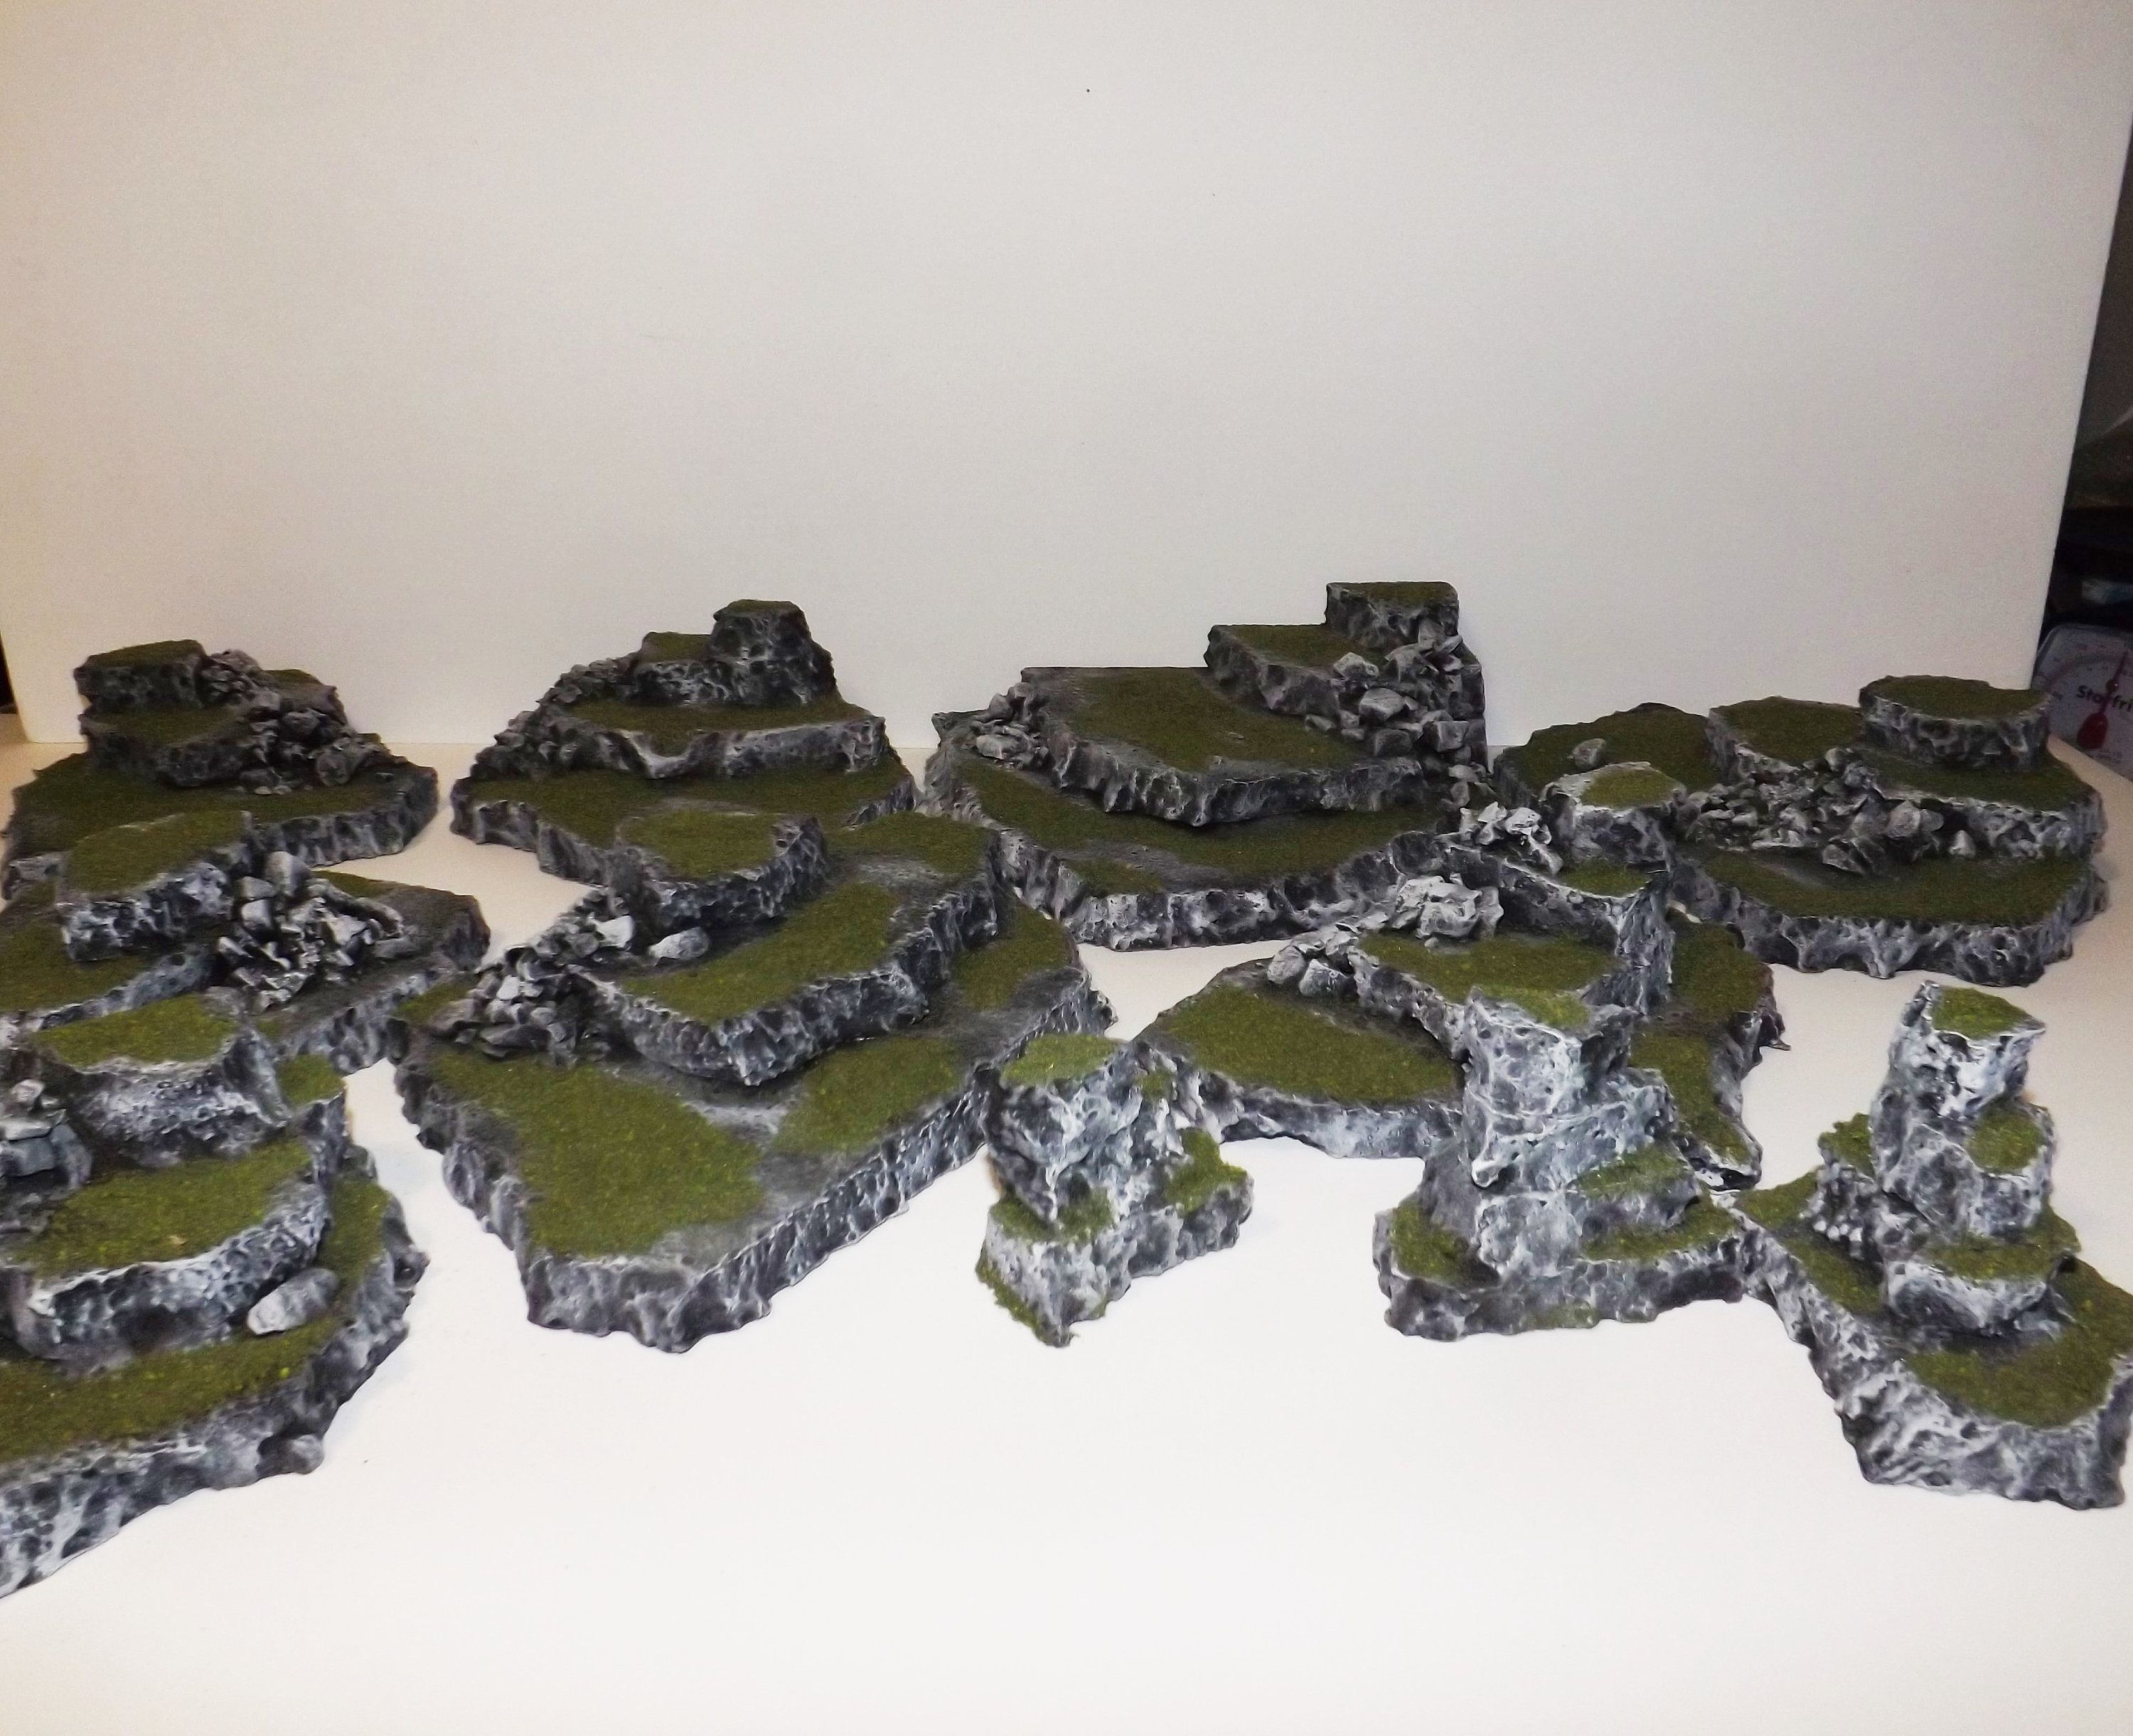 wargaming terrain rocky hills and crag's 11 piece set warhammer ,40K,AOS, 28mm terrain,